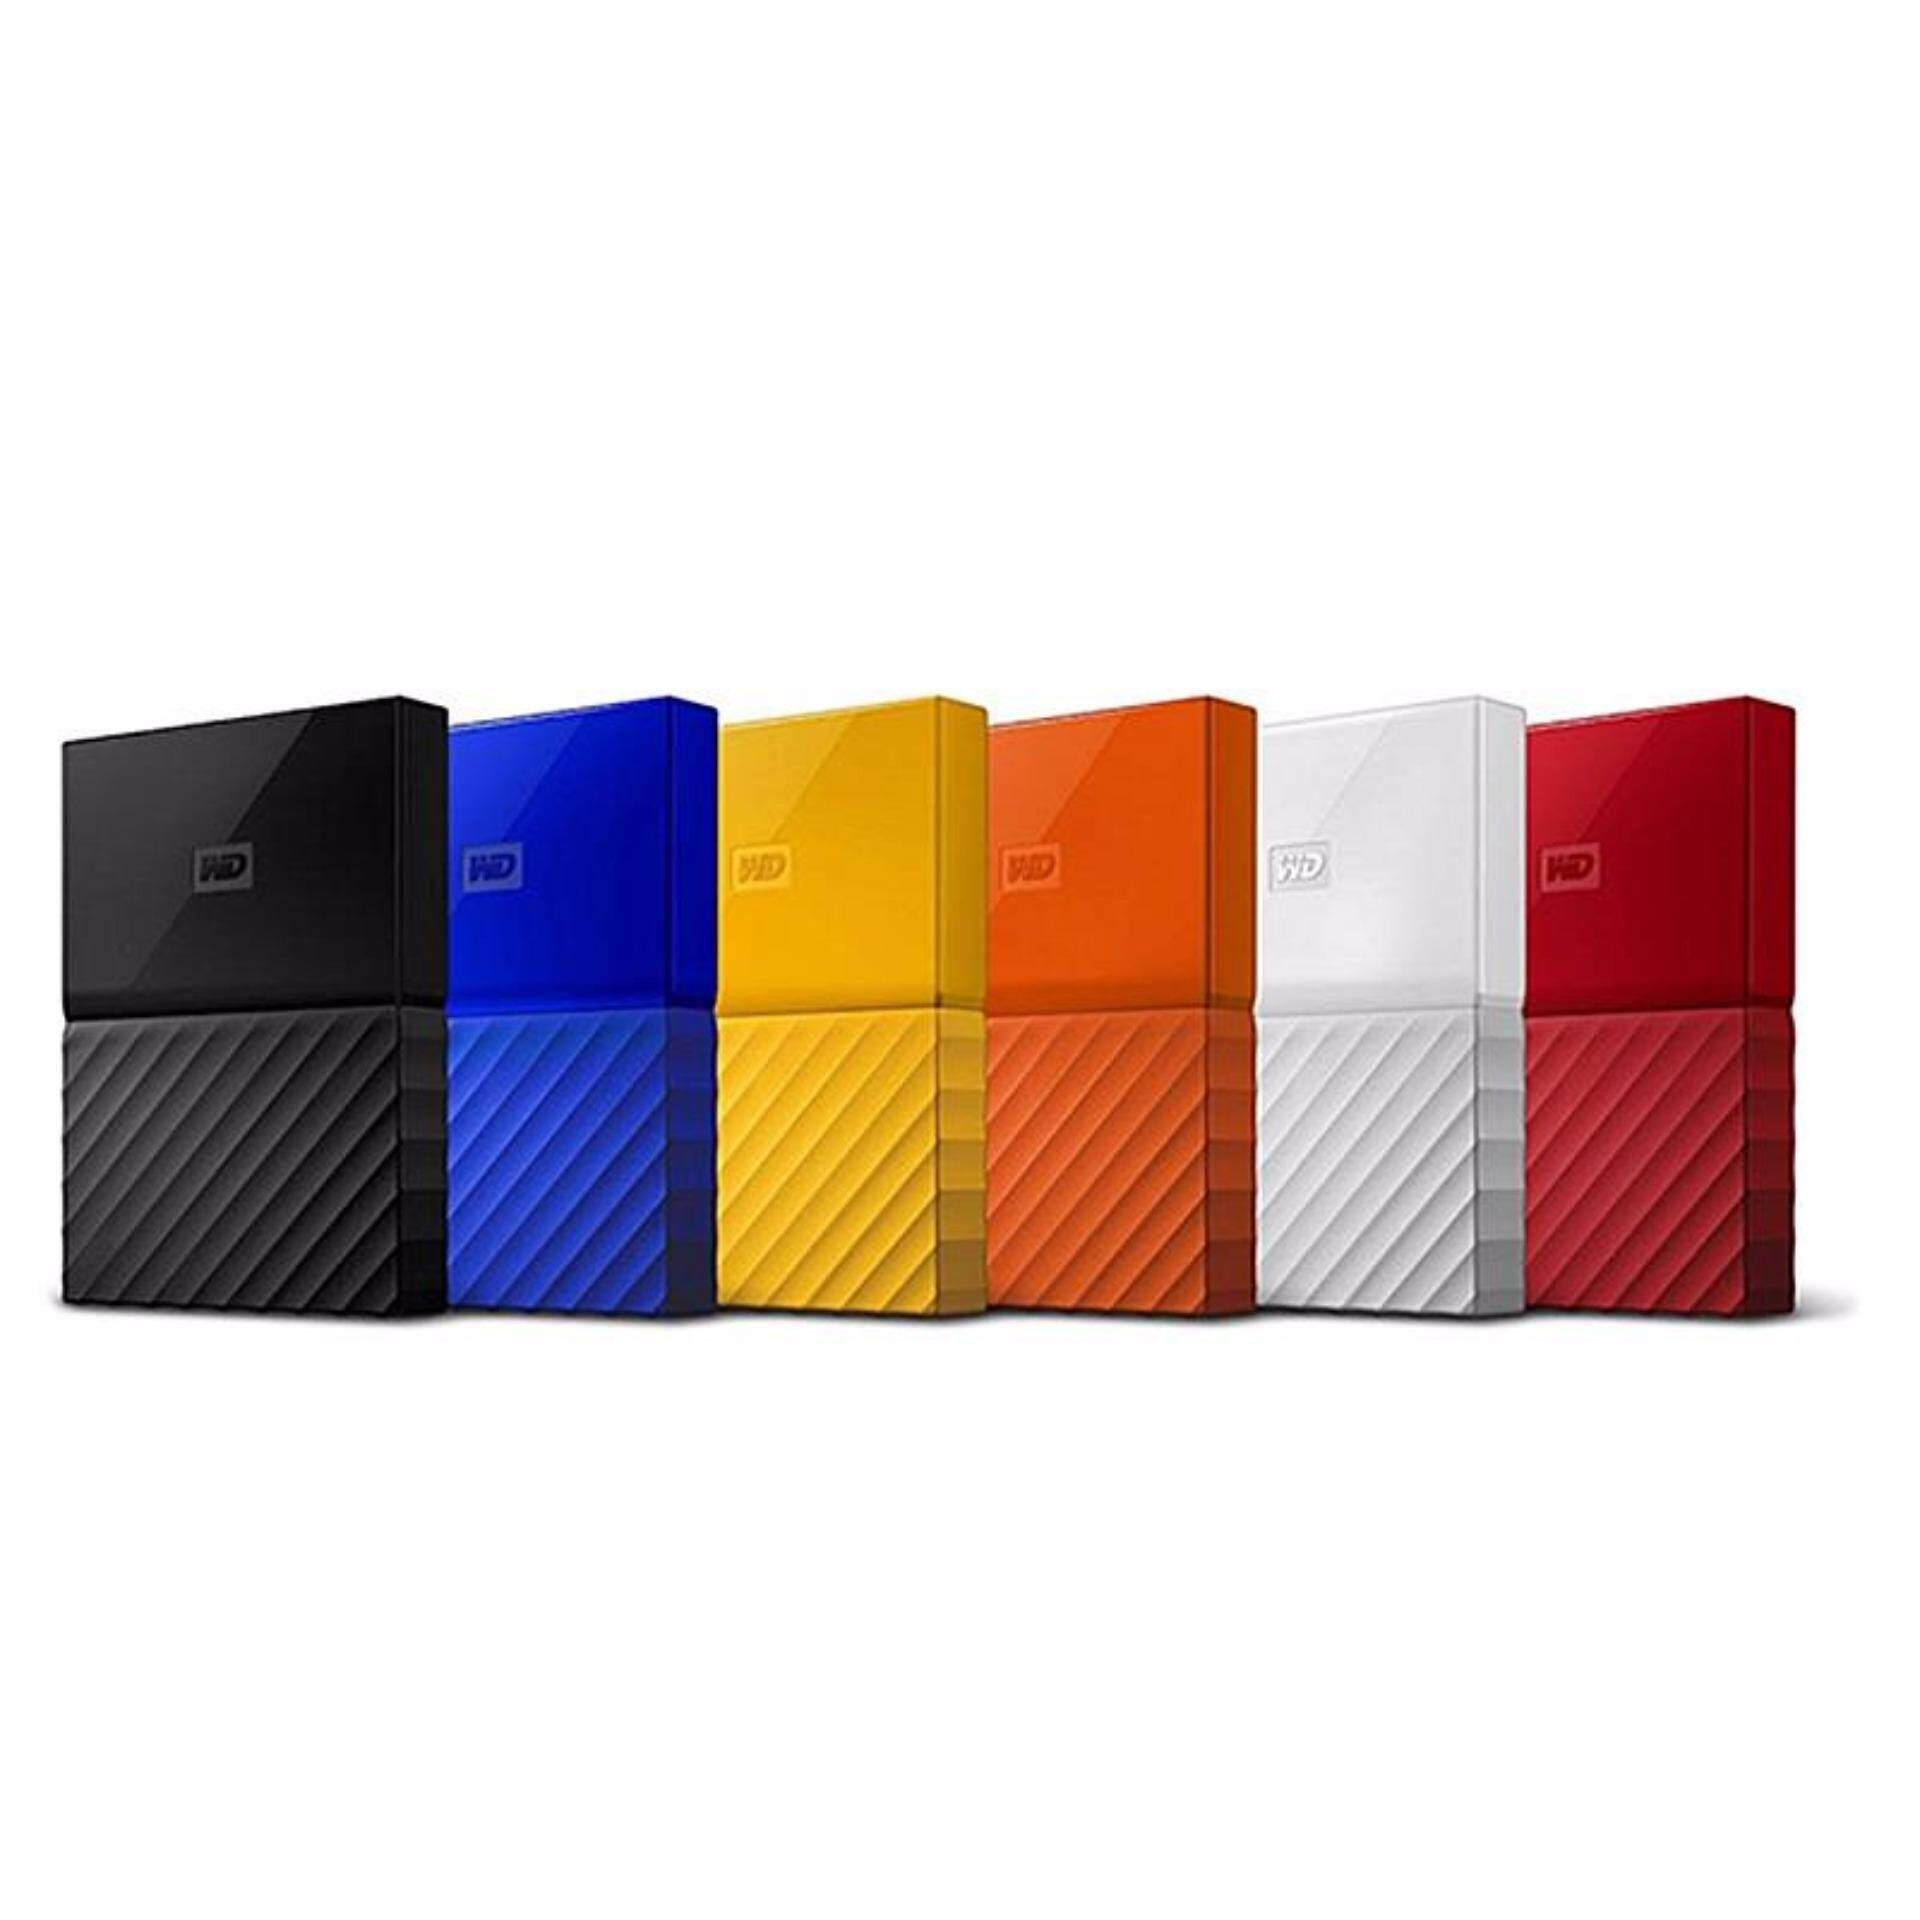 WD Western Digital HDD My Passport ( 1TB ) Portable Storage External Hard Disk Drive (ORIGINAL/ READY STOCK) - YELLOW